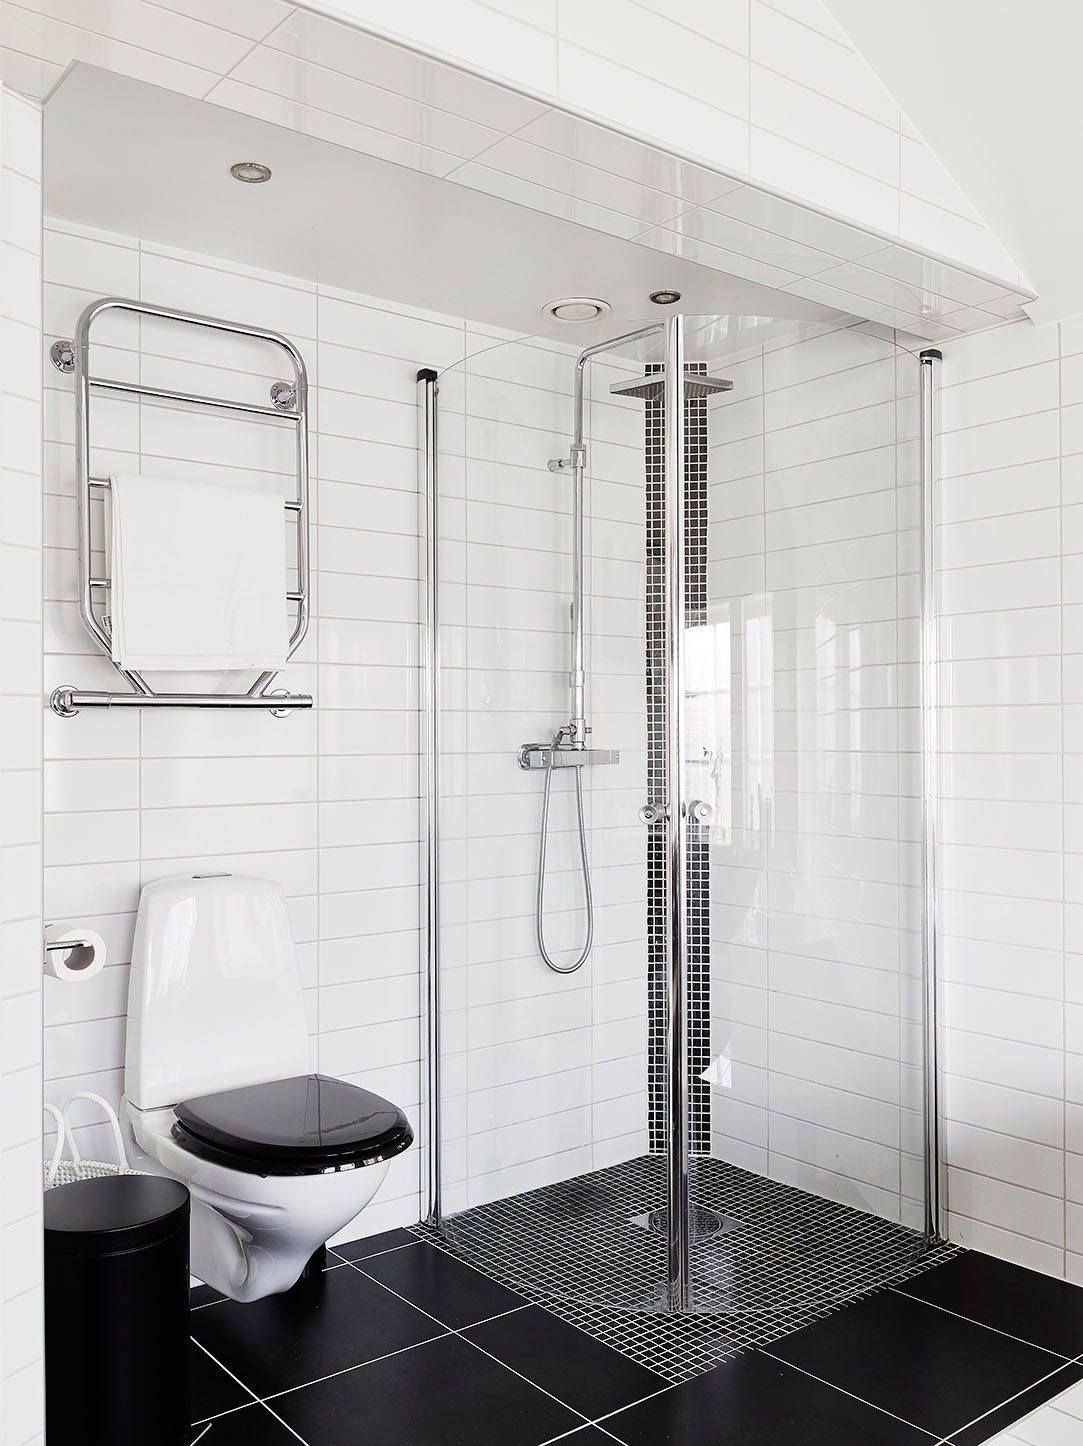 Hotel resorts standing fiberglass shower heated towel rail black hotel resorts standing fiberglass shower heated towel rail black seat toilet large black floor tile white ceramic wall ceiling spotlight large roll toilet dailygadgetfo Image collections